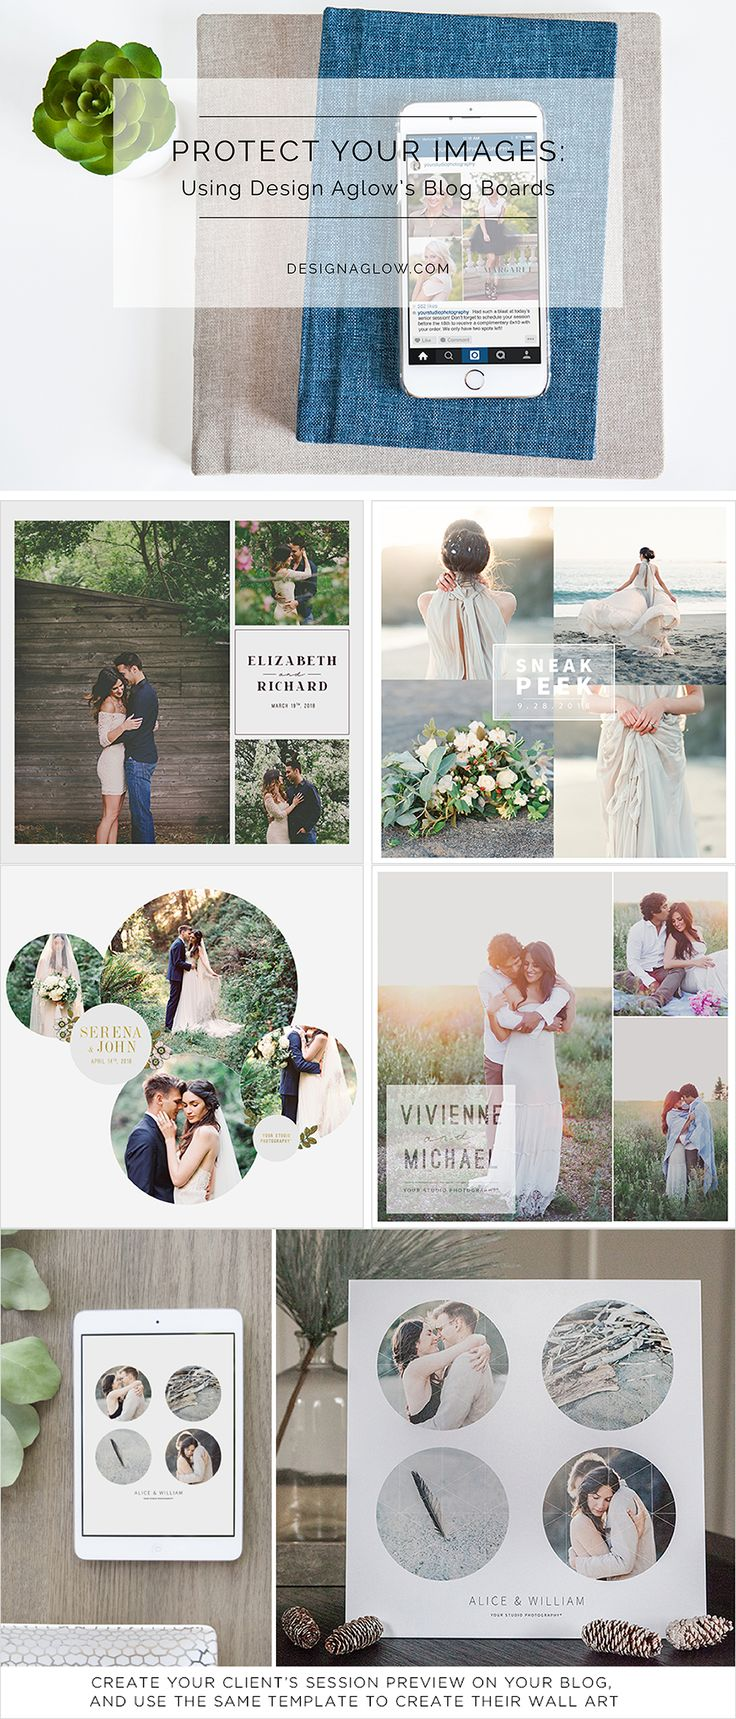 Protect your online images beautifully with Design Aglow's new Blog & Print Layouts: Timeless Elegance. #designaglow